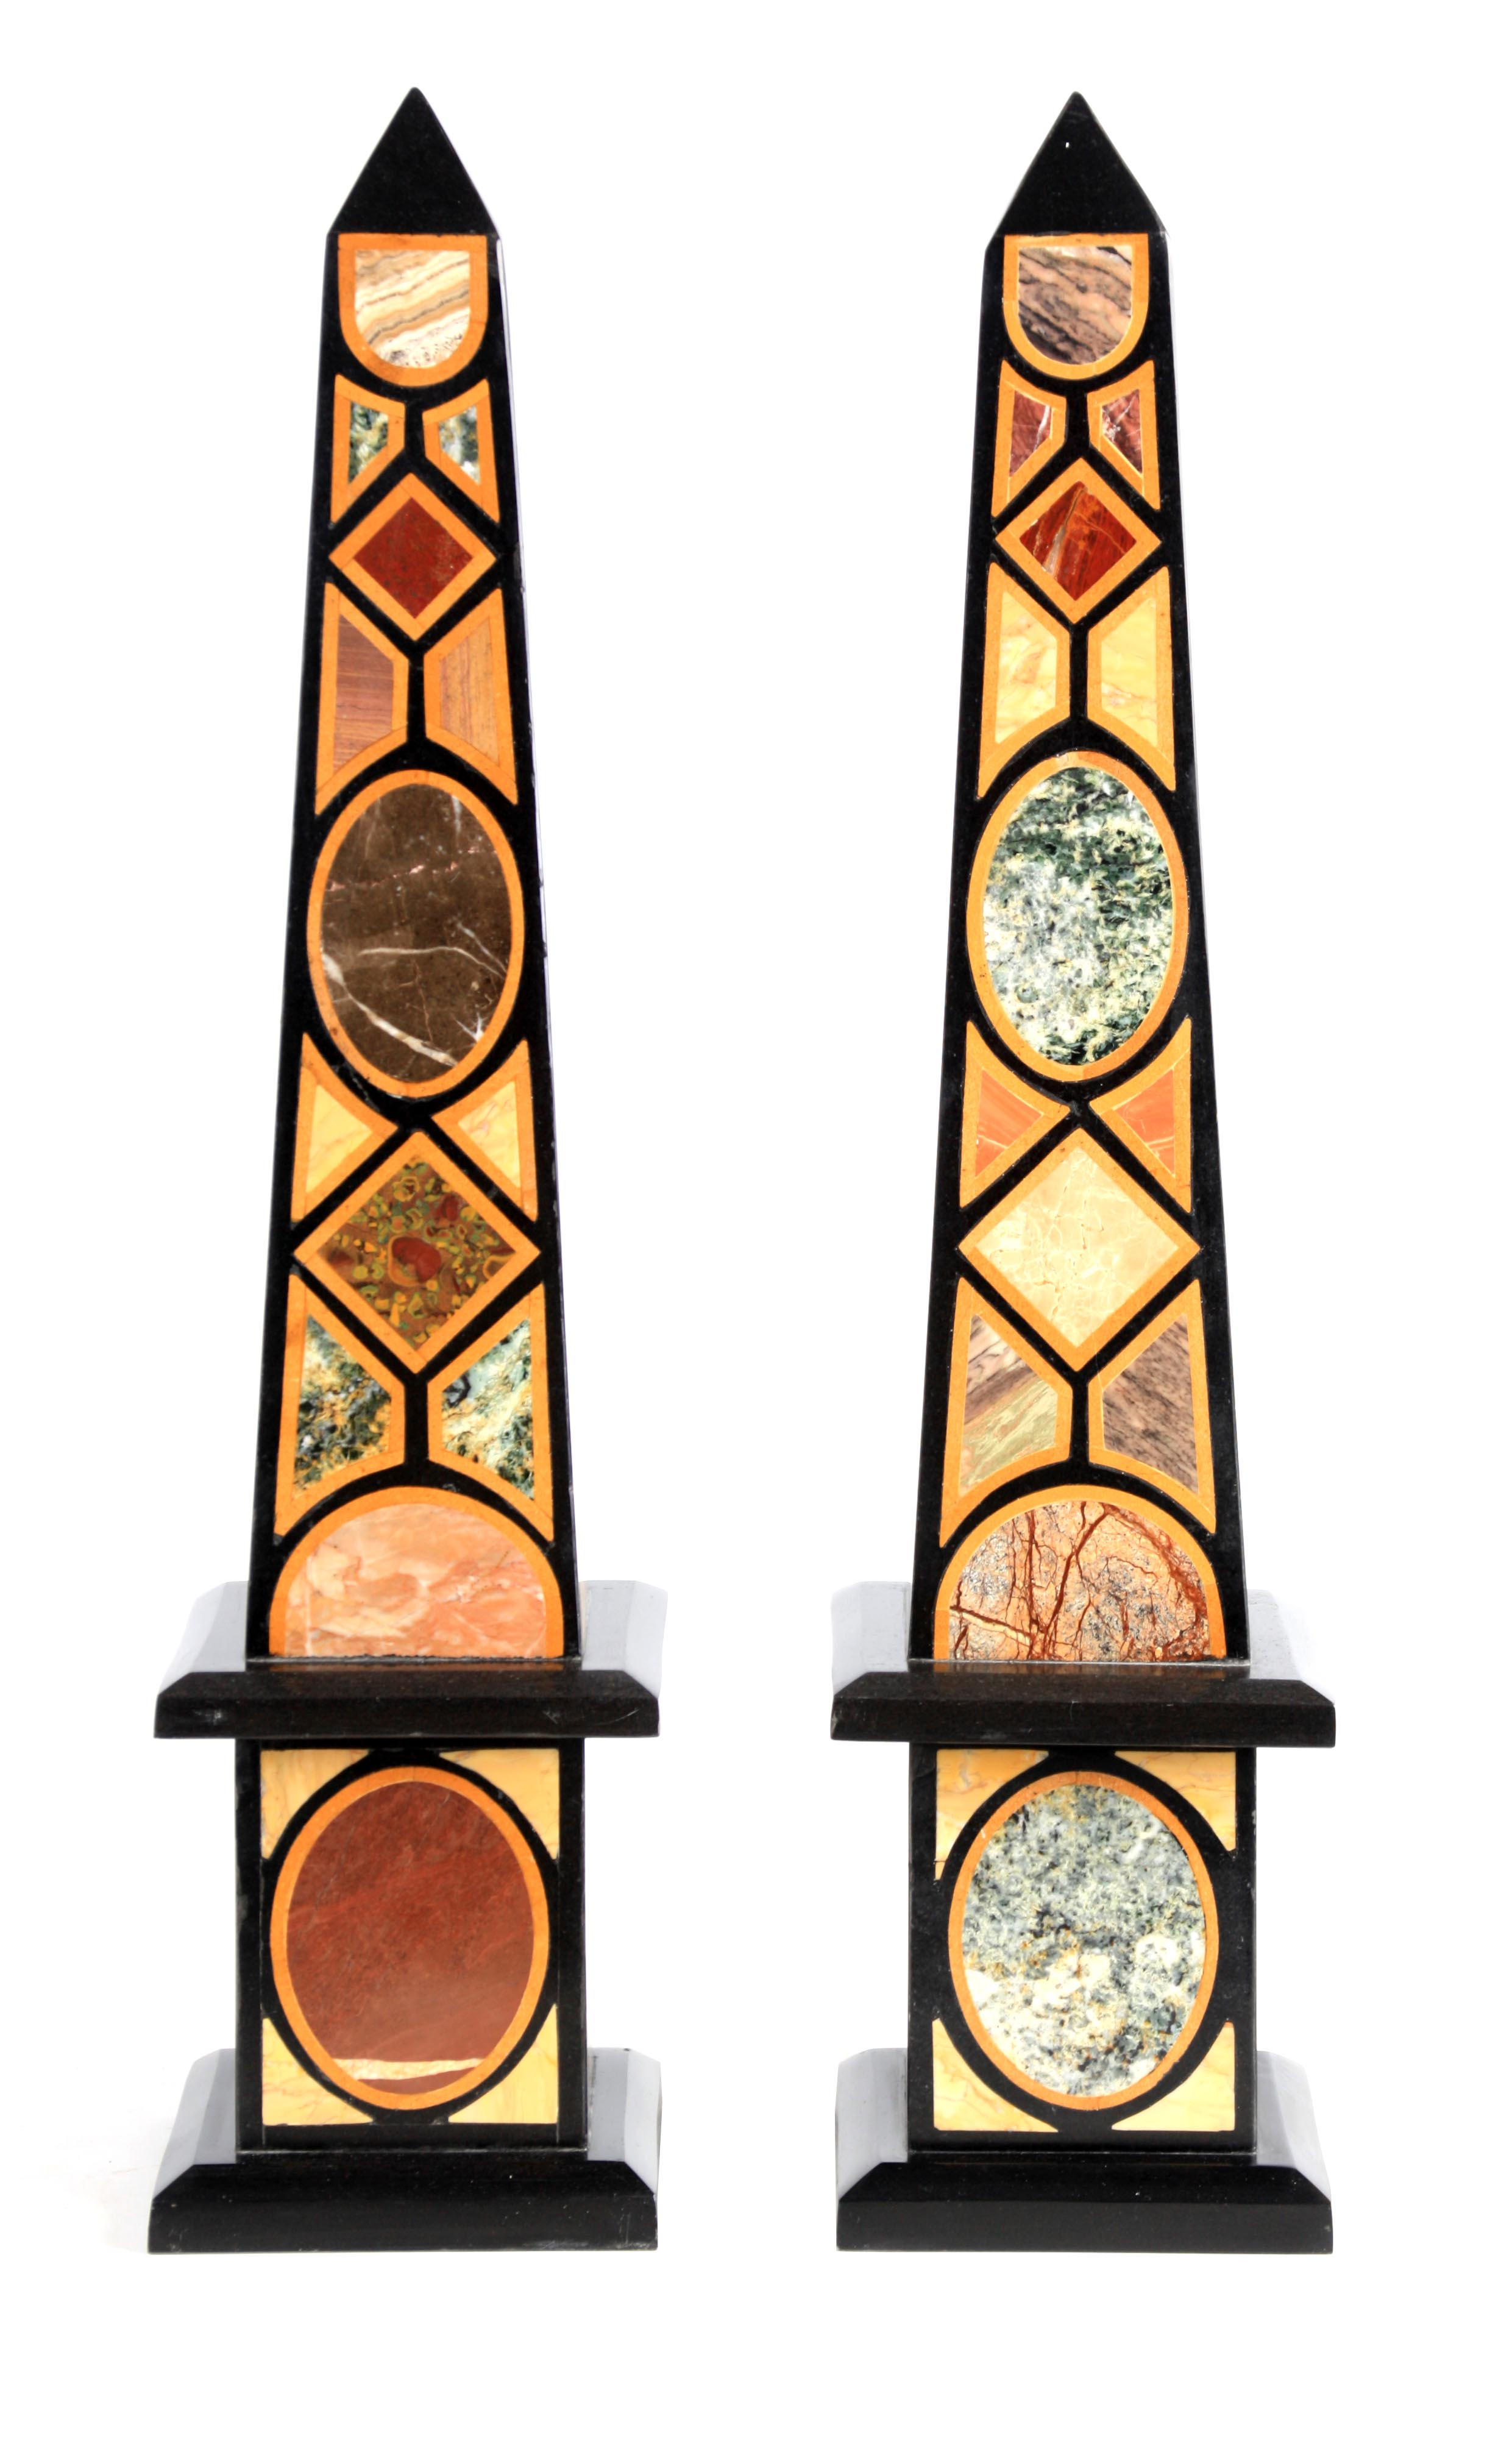 A LARGE AND IMPRESSIVE PAIR OF 20TH CENTURY REGENCY STYLE SPECIMEN MARBLE OBELISKS inlaid with